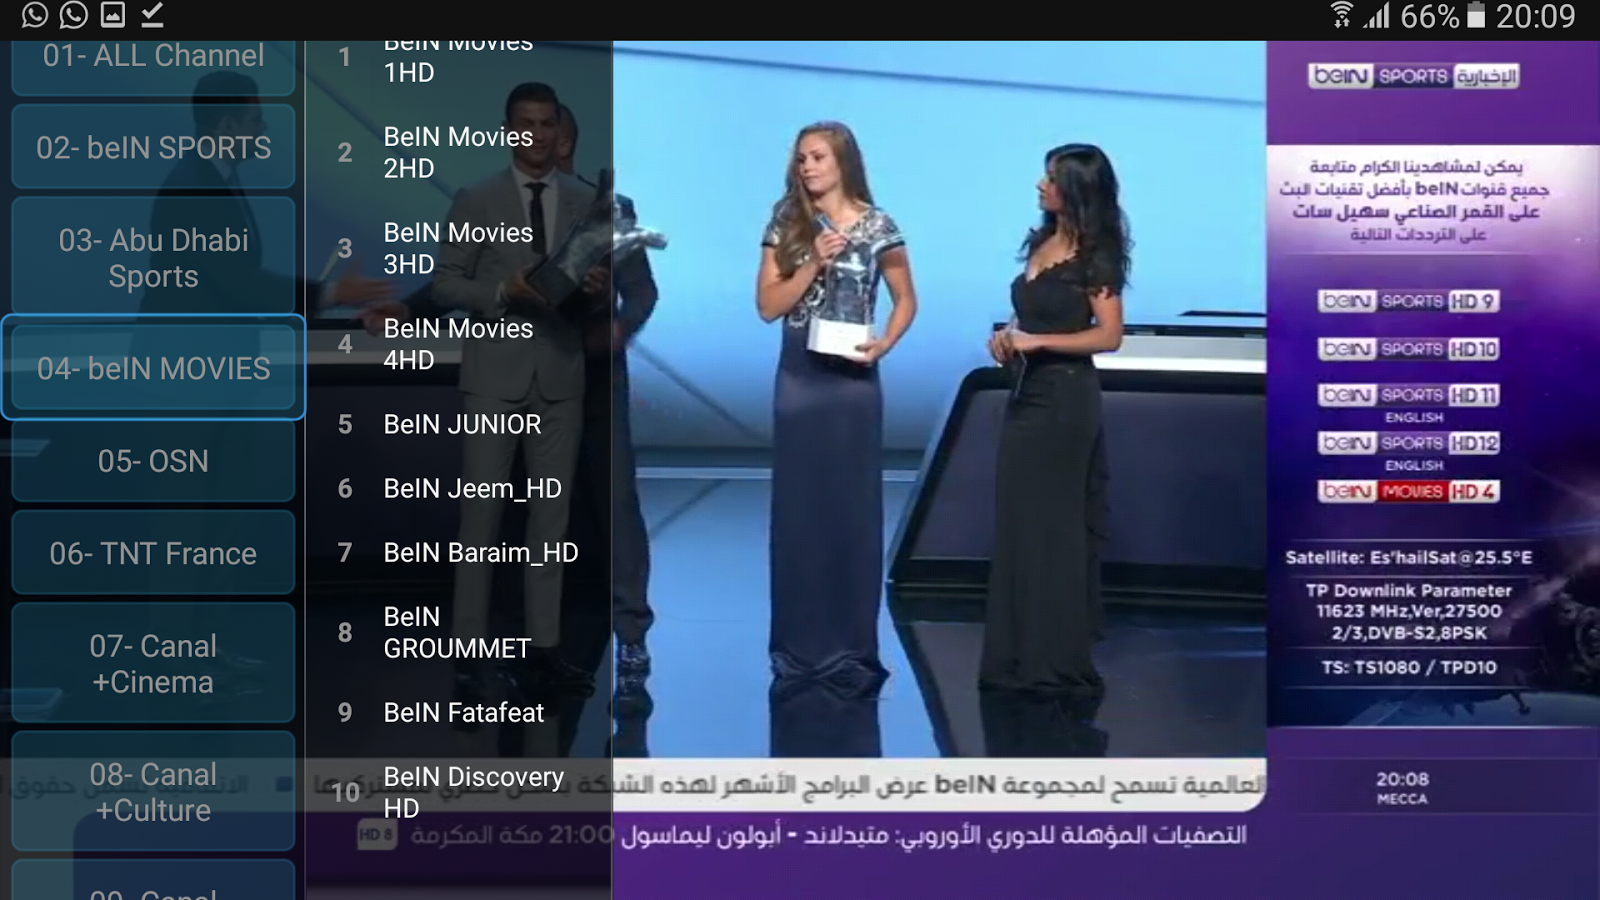 Download Iptv Arabic -BeOne TV - ANDROID TIPS